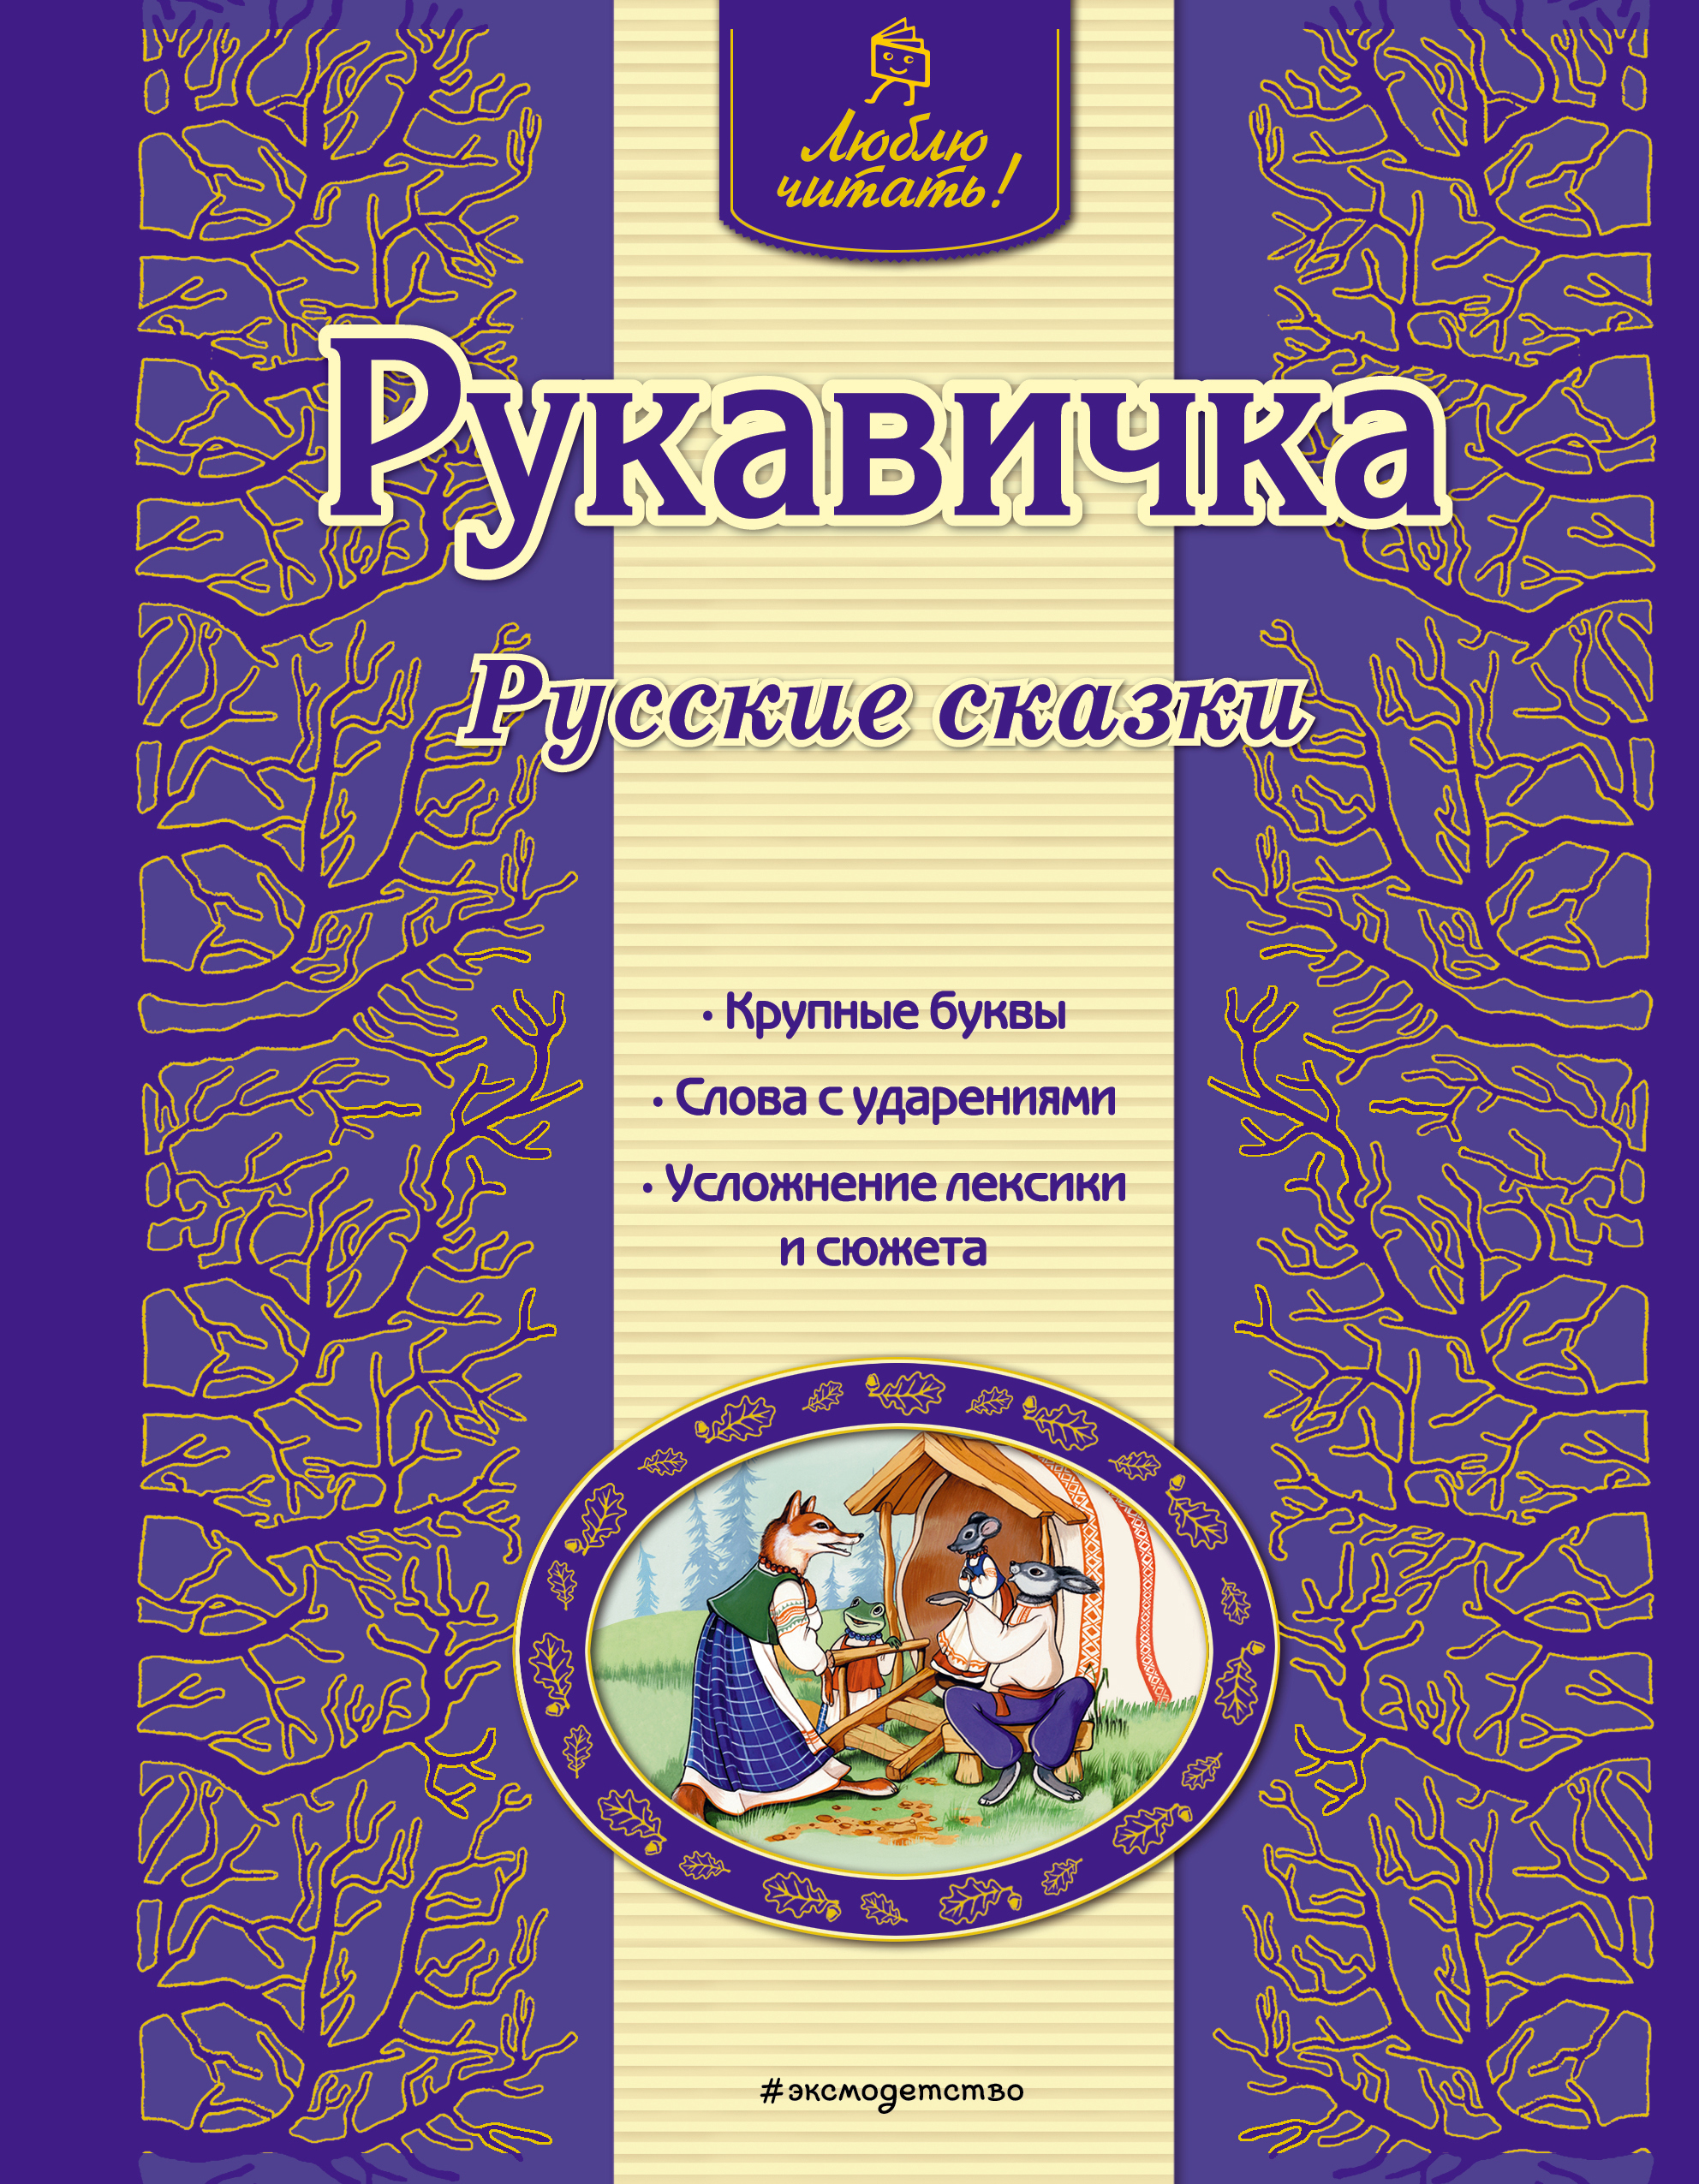 Рукавичка. Русские сказки - страница 0